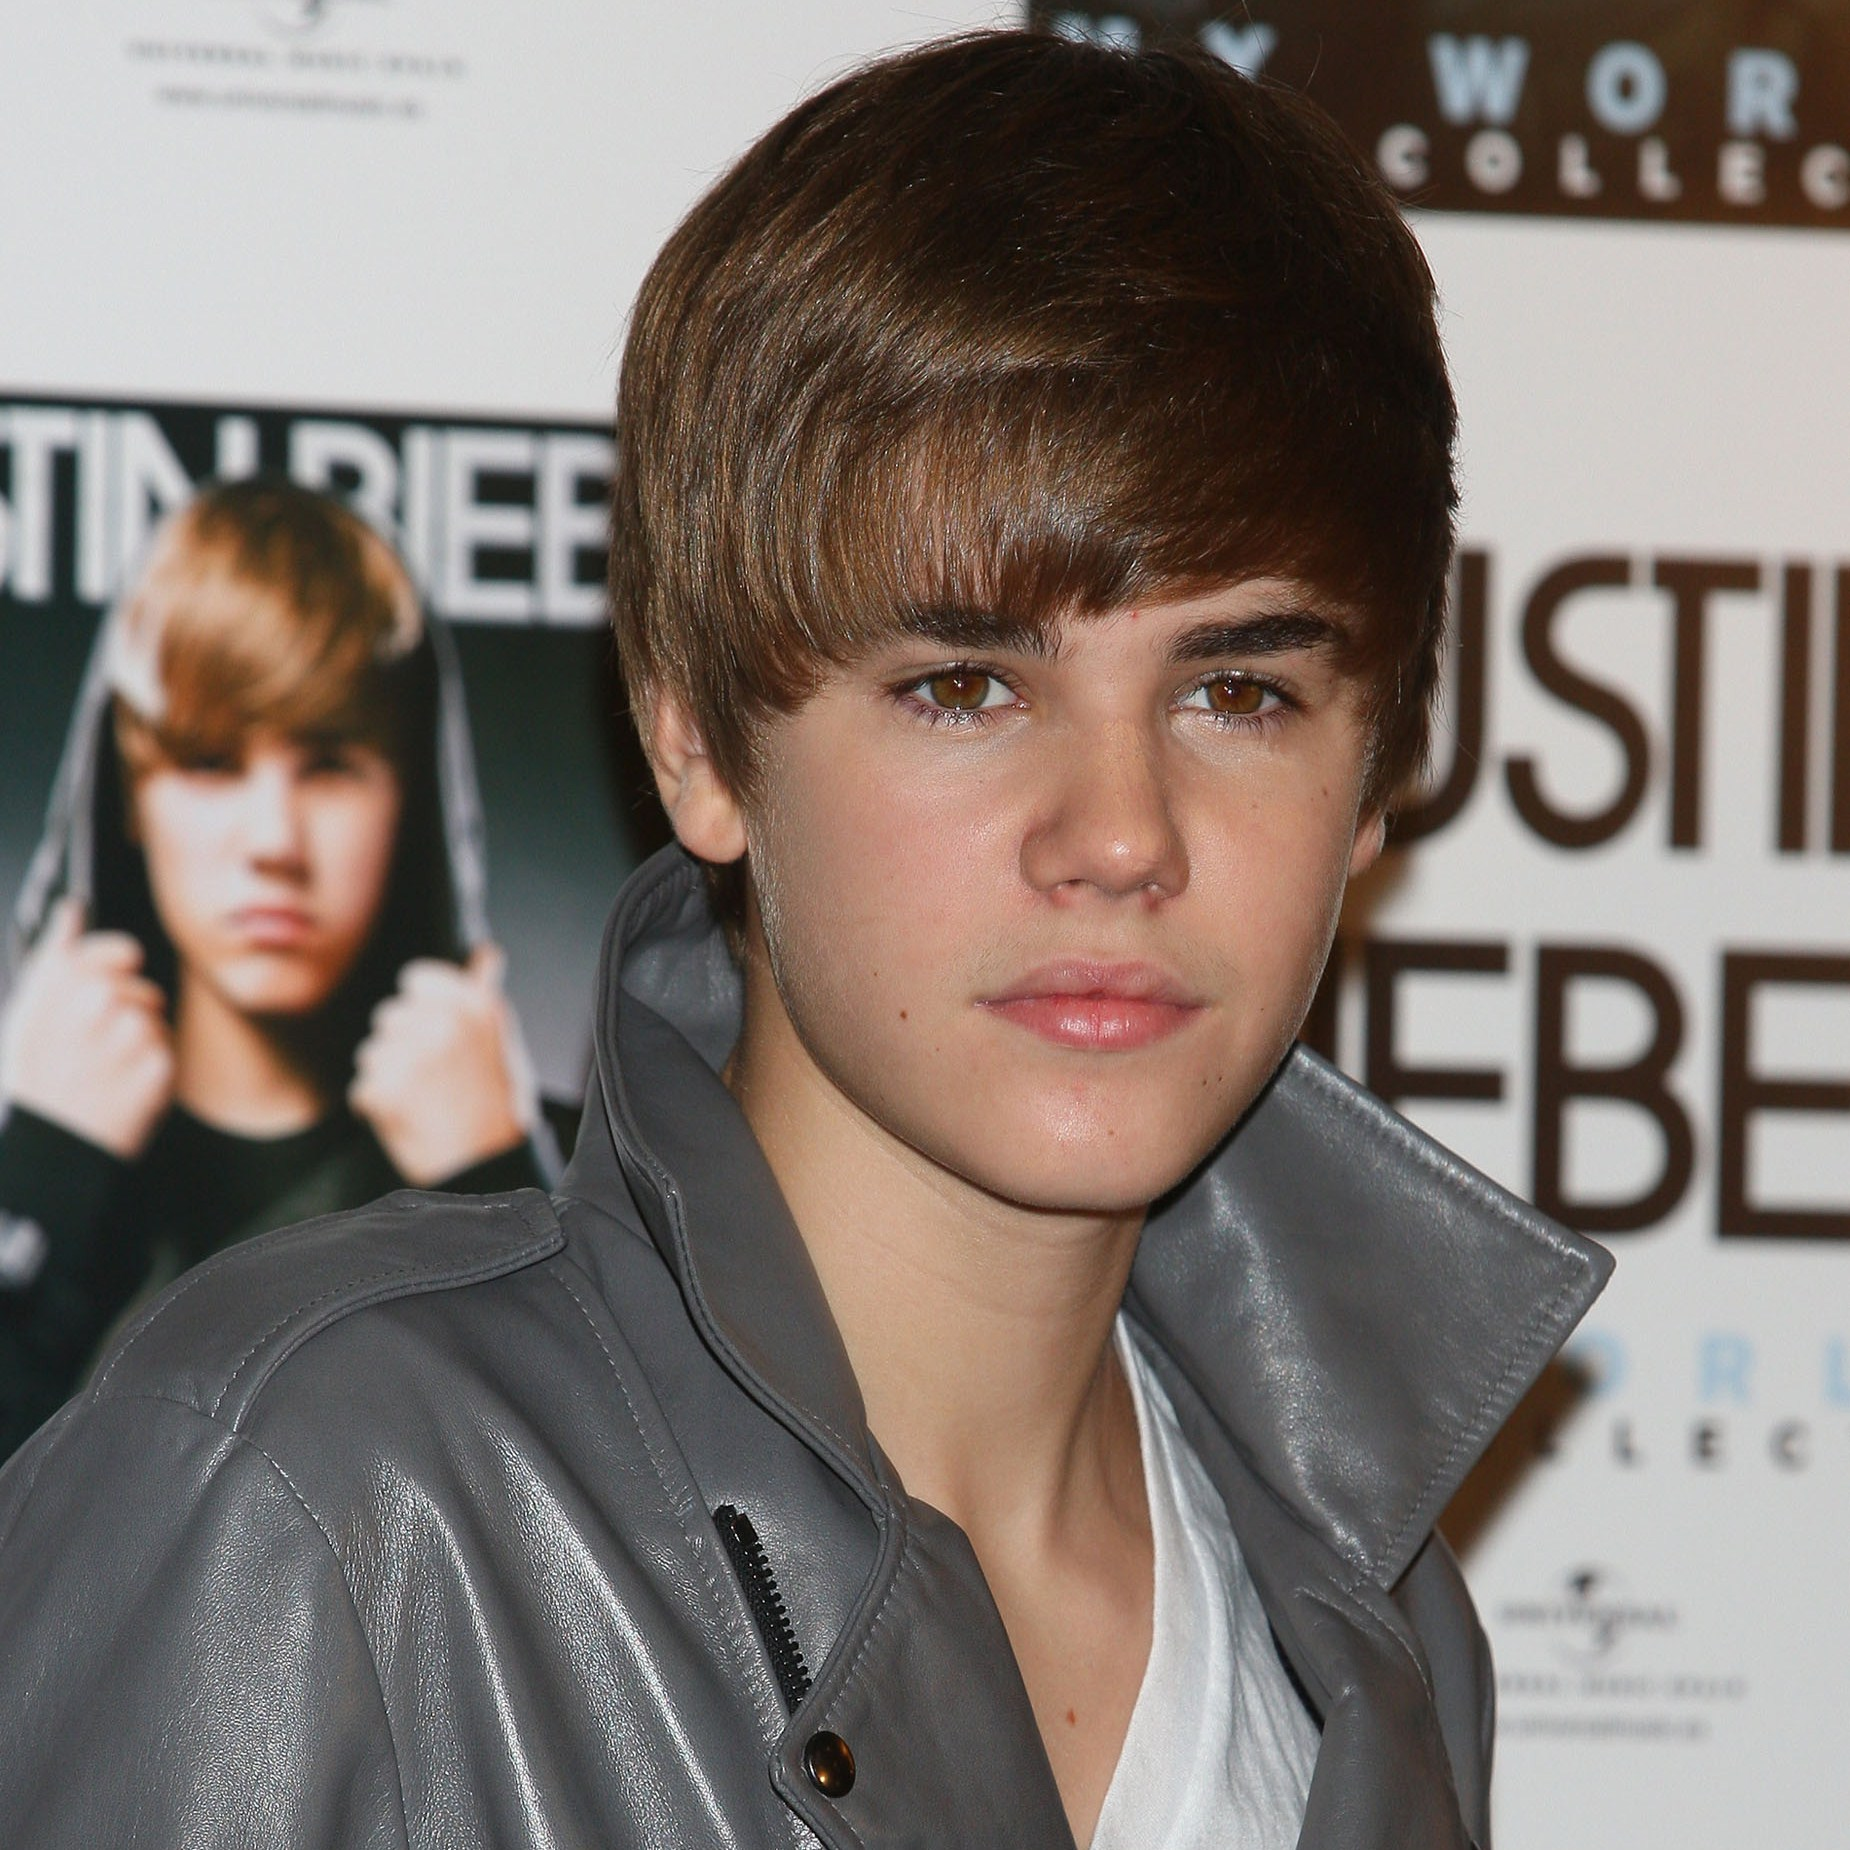 Teen pop sensation JUSTIN BIEBER is giving fans the chance to meet him ...